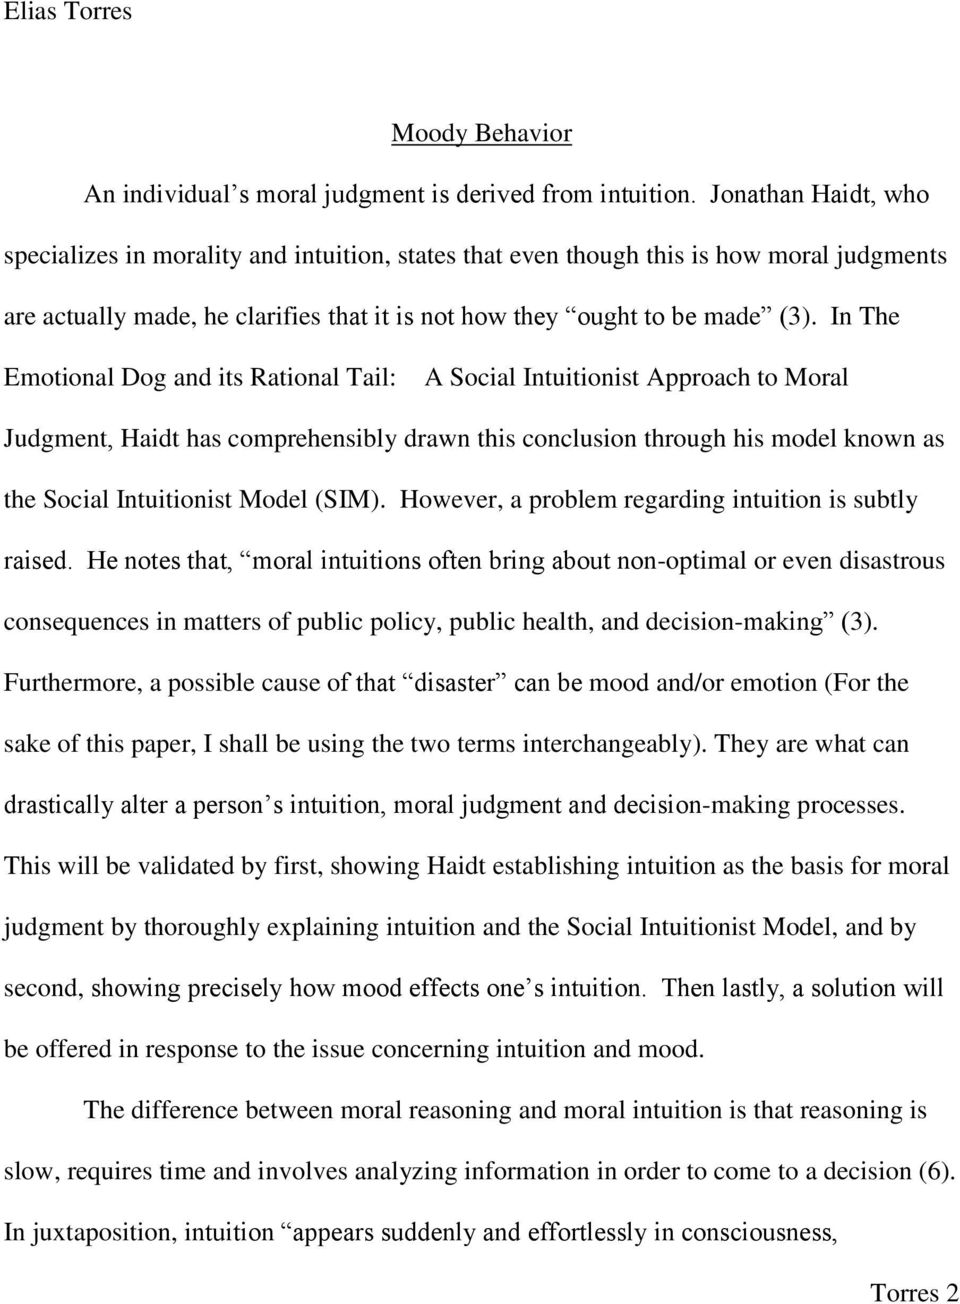 In The Emotional Dog and its Rational Tail: A Social Intuitionist Approach to Moral Judgment, Haidt has comprehensibly drawn this conclusion through his model known as the Social Intuitionist Model